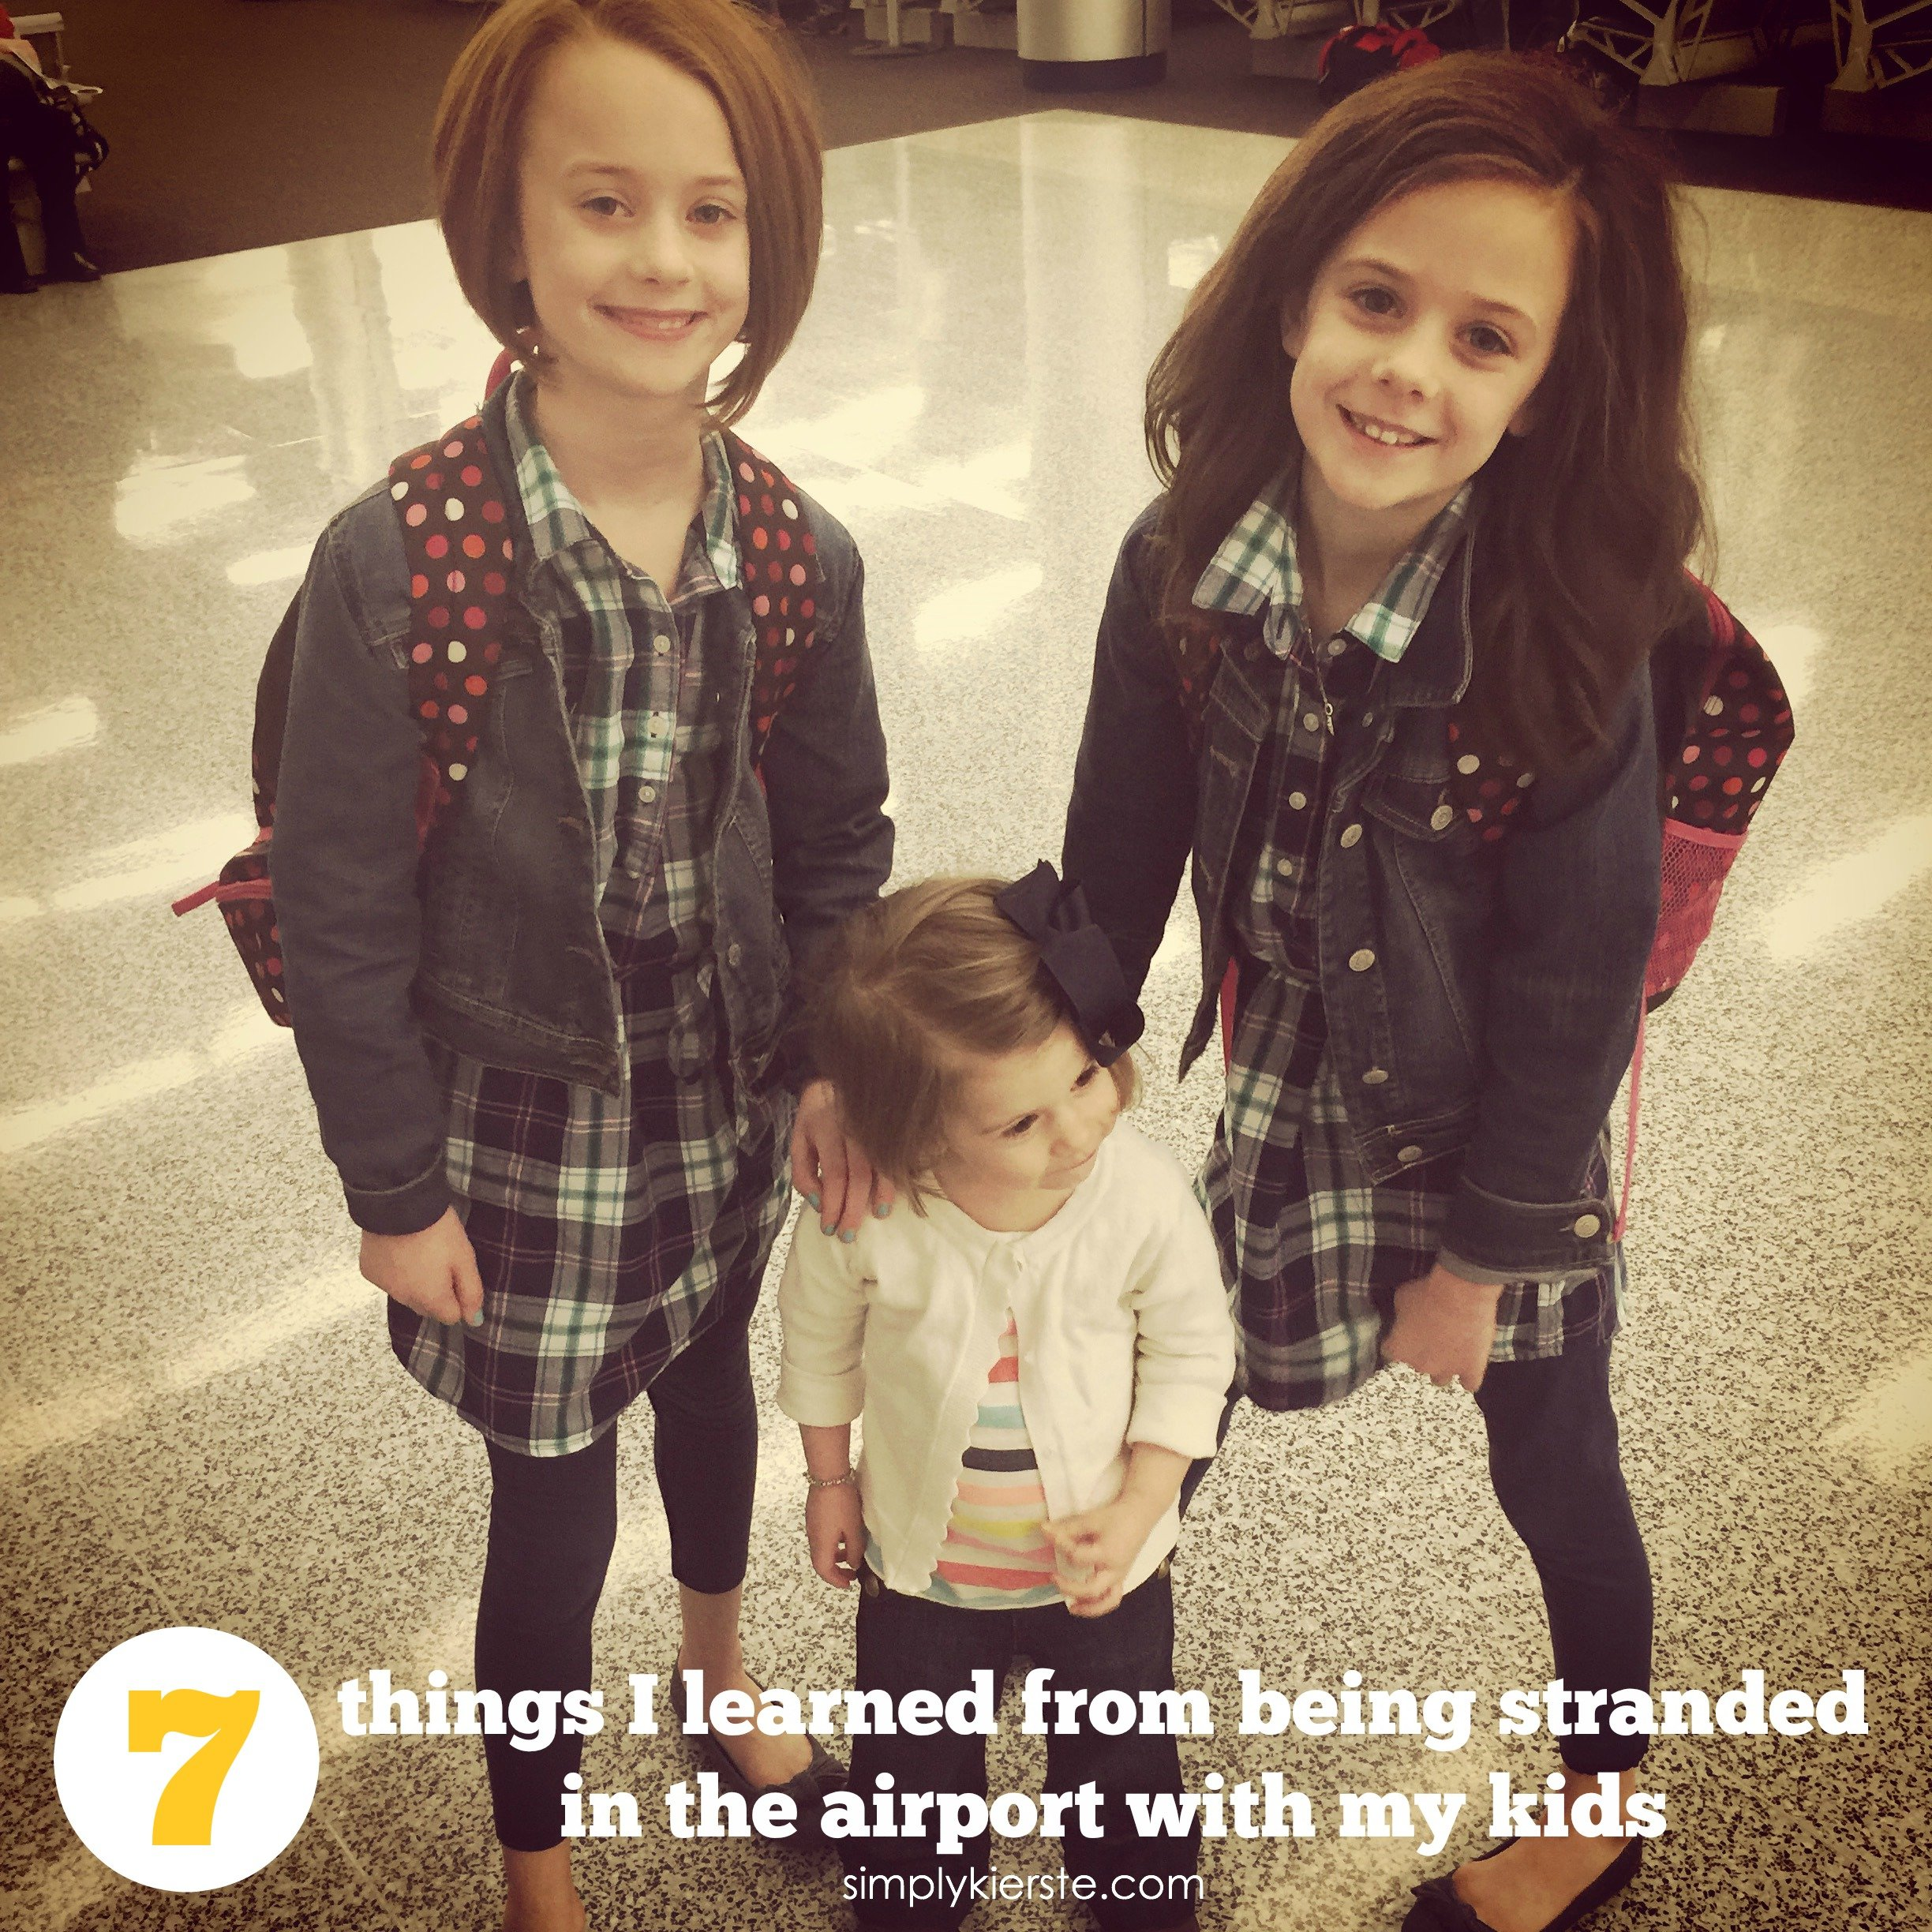 7 things I learned from being stranded in the airport with kids